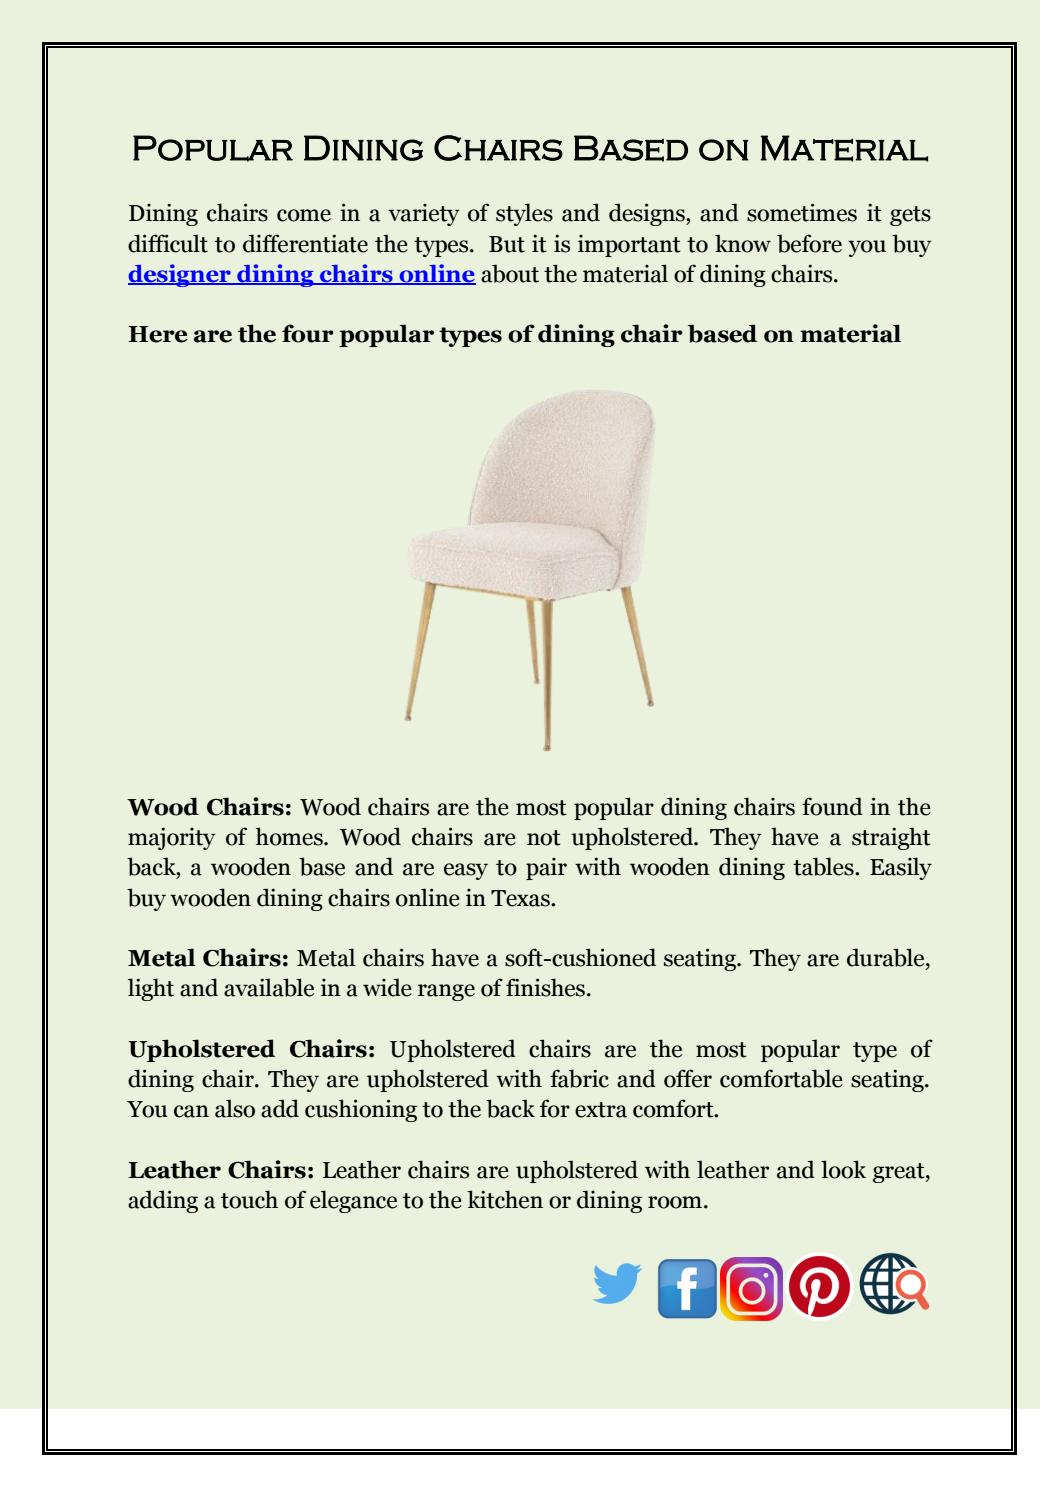 Popular Dining Chairs Based On Material By The Khazana Issuu